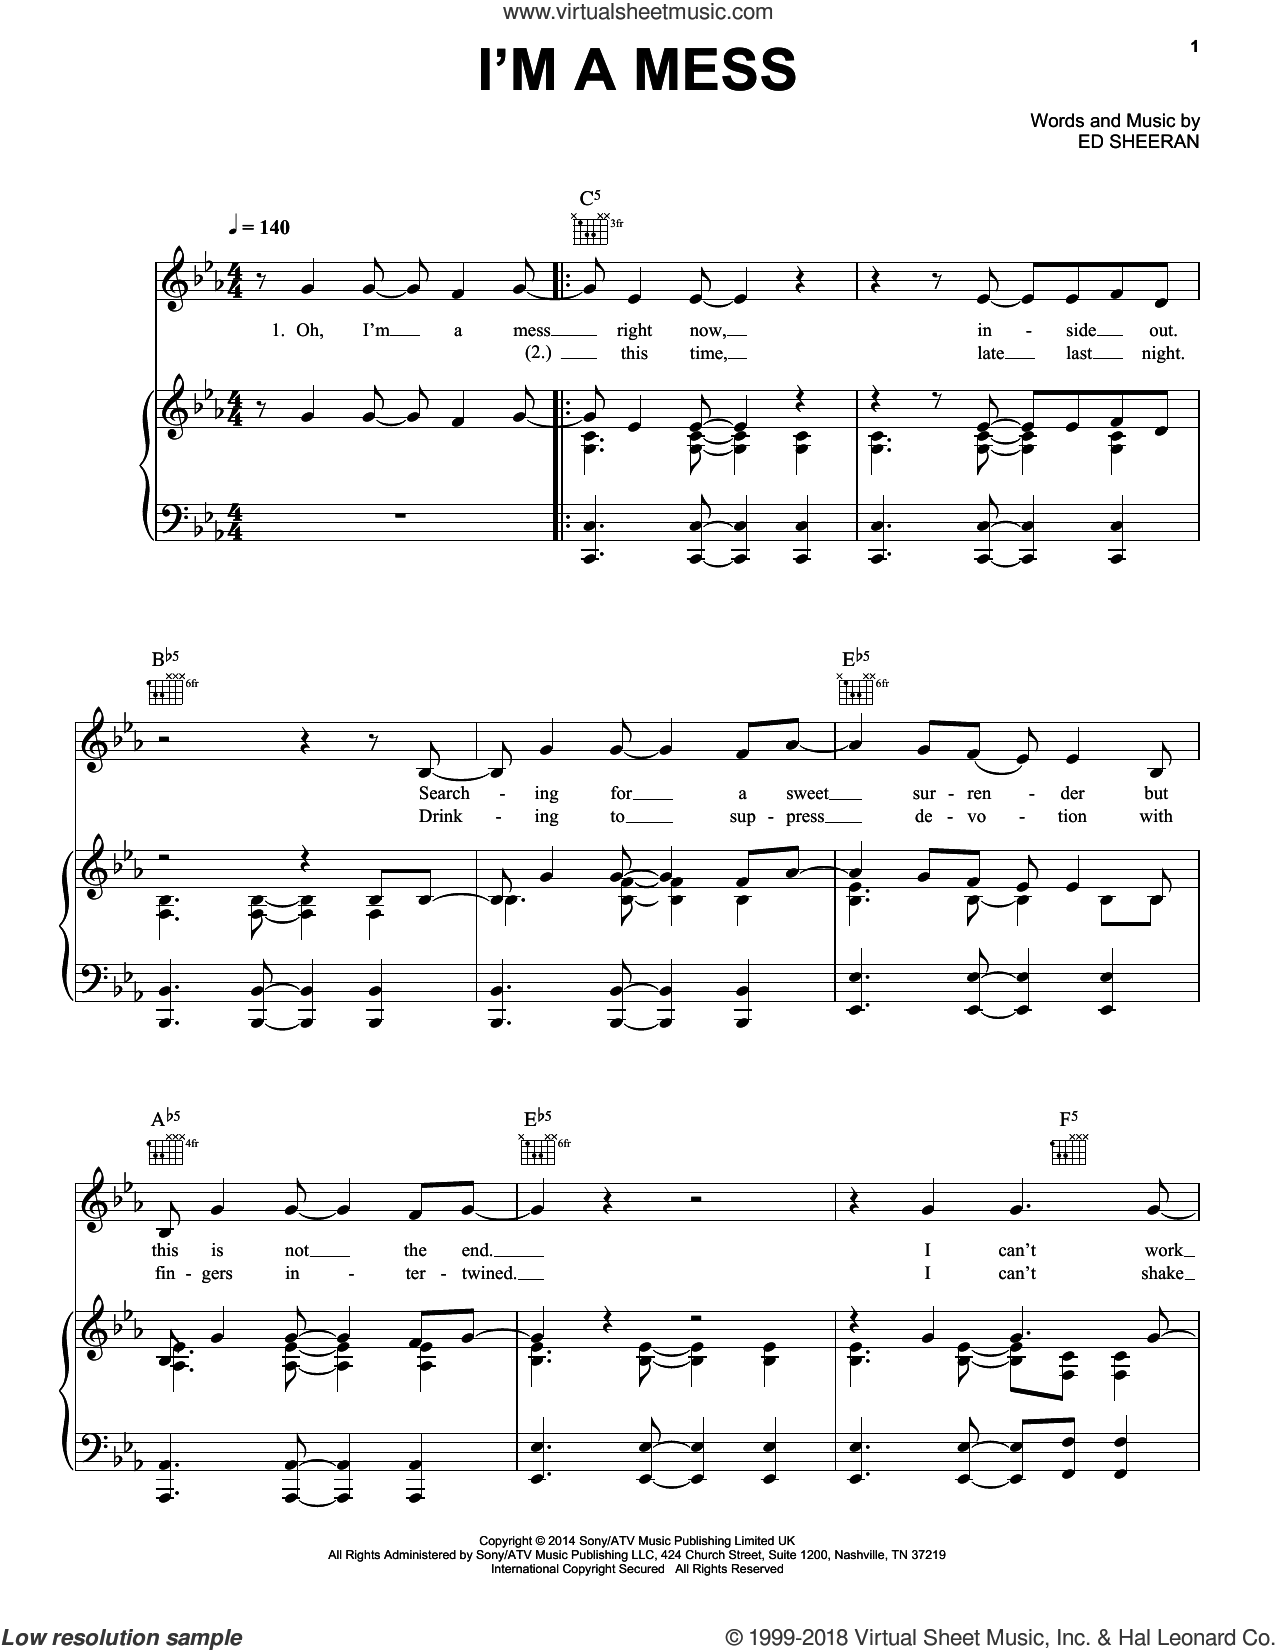 I'm A Mess sheet music for voice, piano or guitar by Ed Sheeran. Score Image Preview.